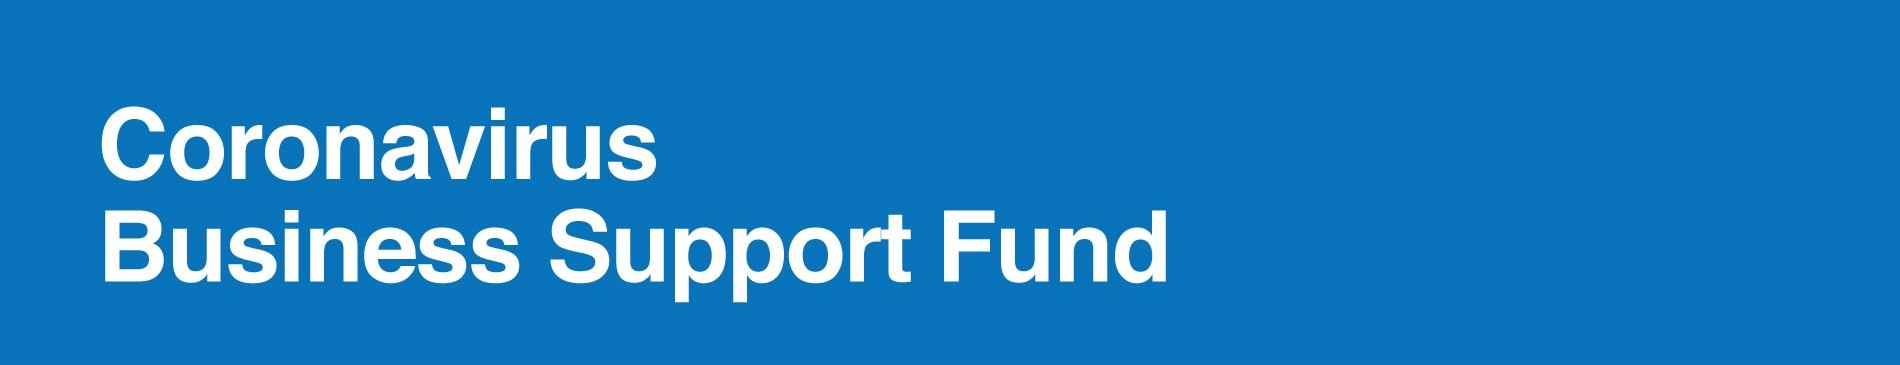 Coronavirus Business Support Fund